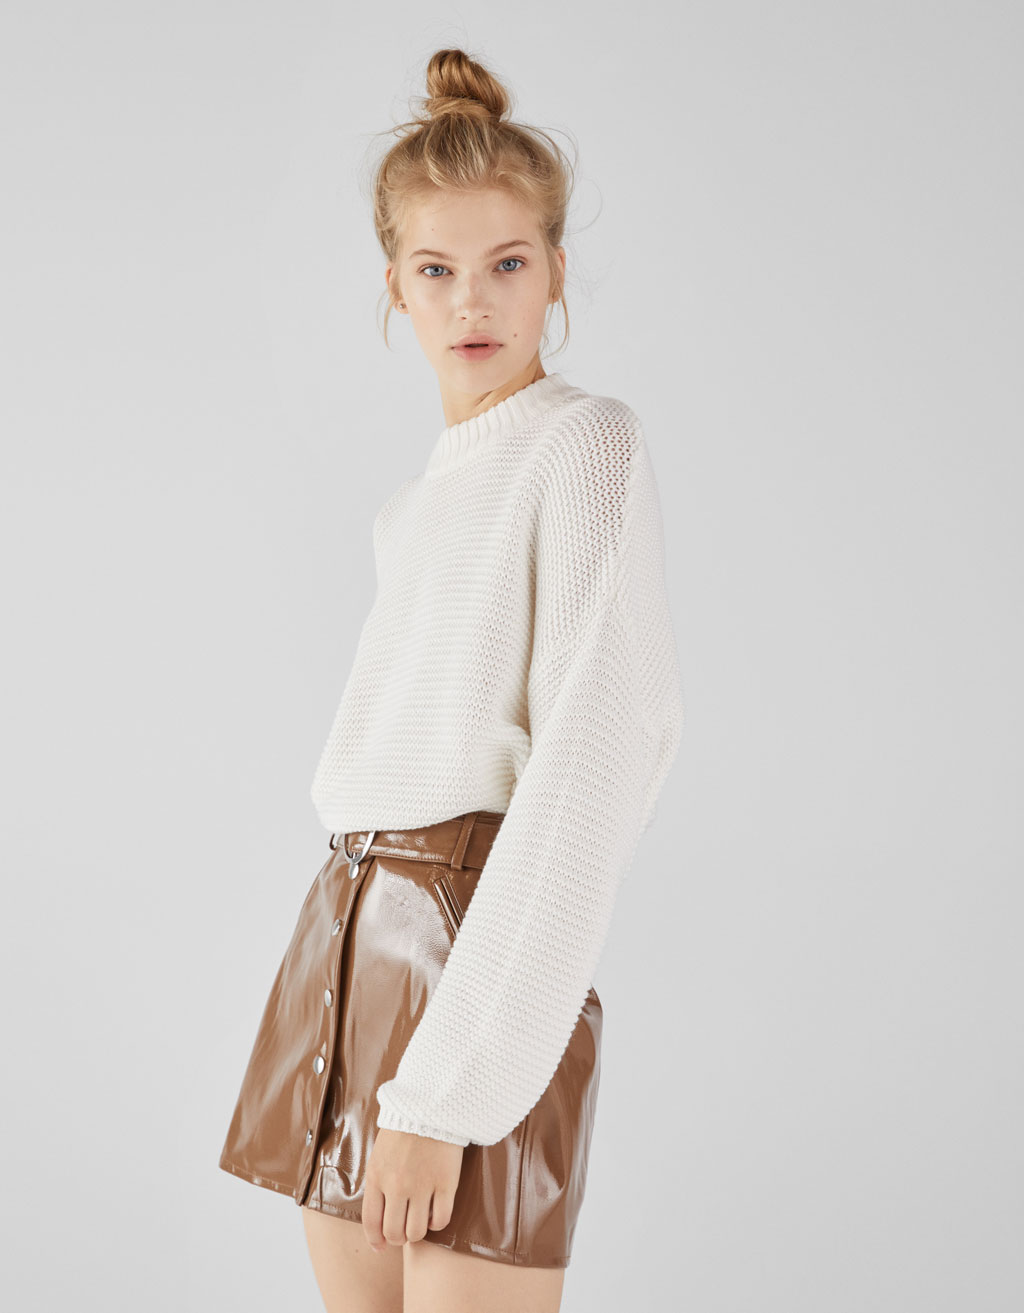 Join Life oversized sweater